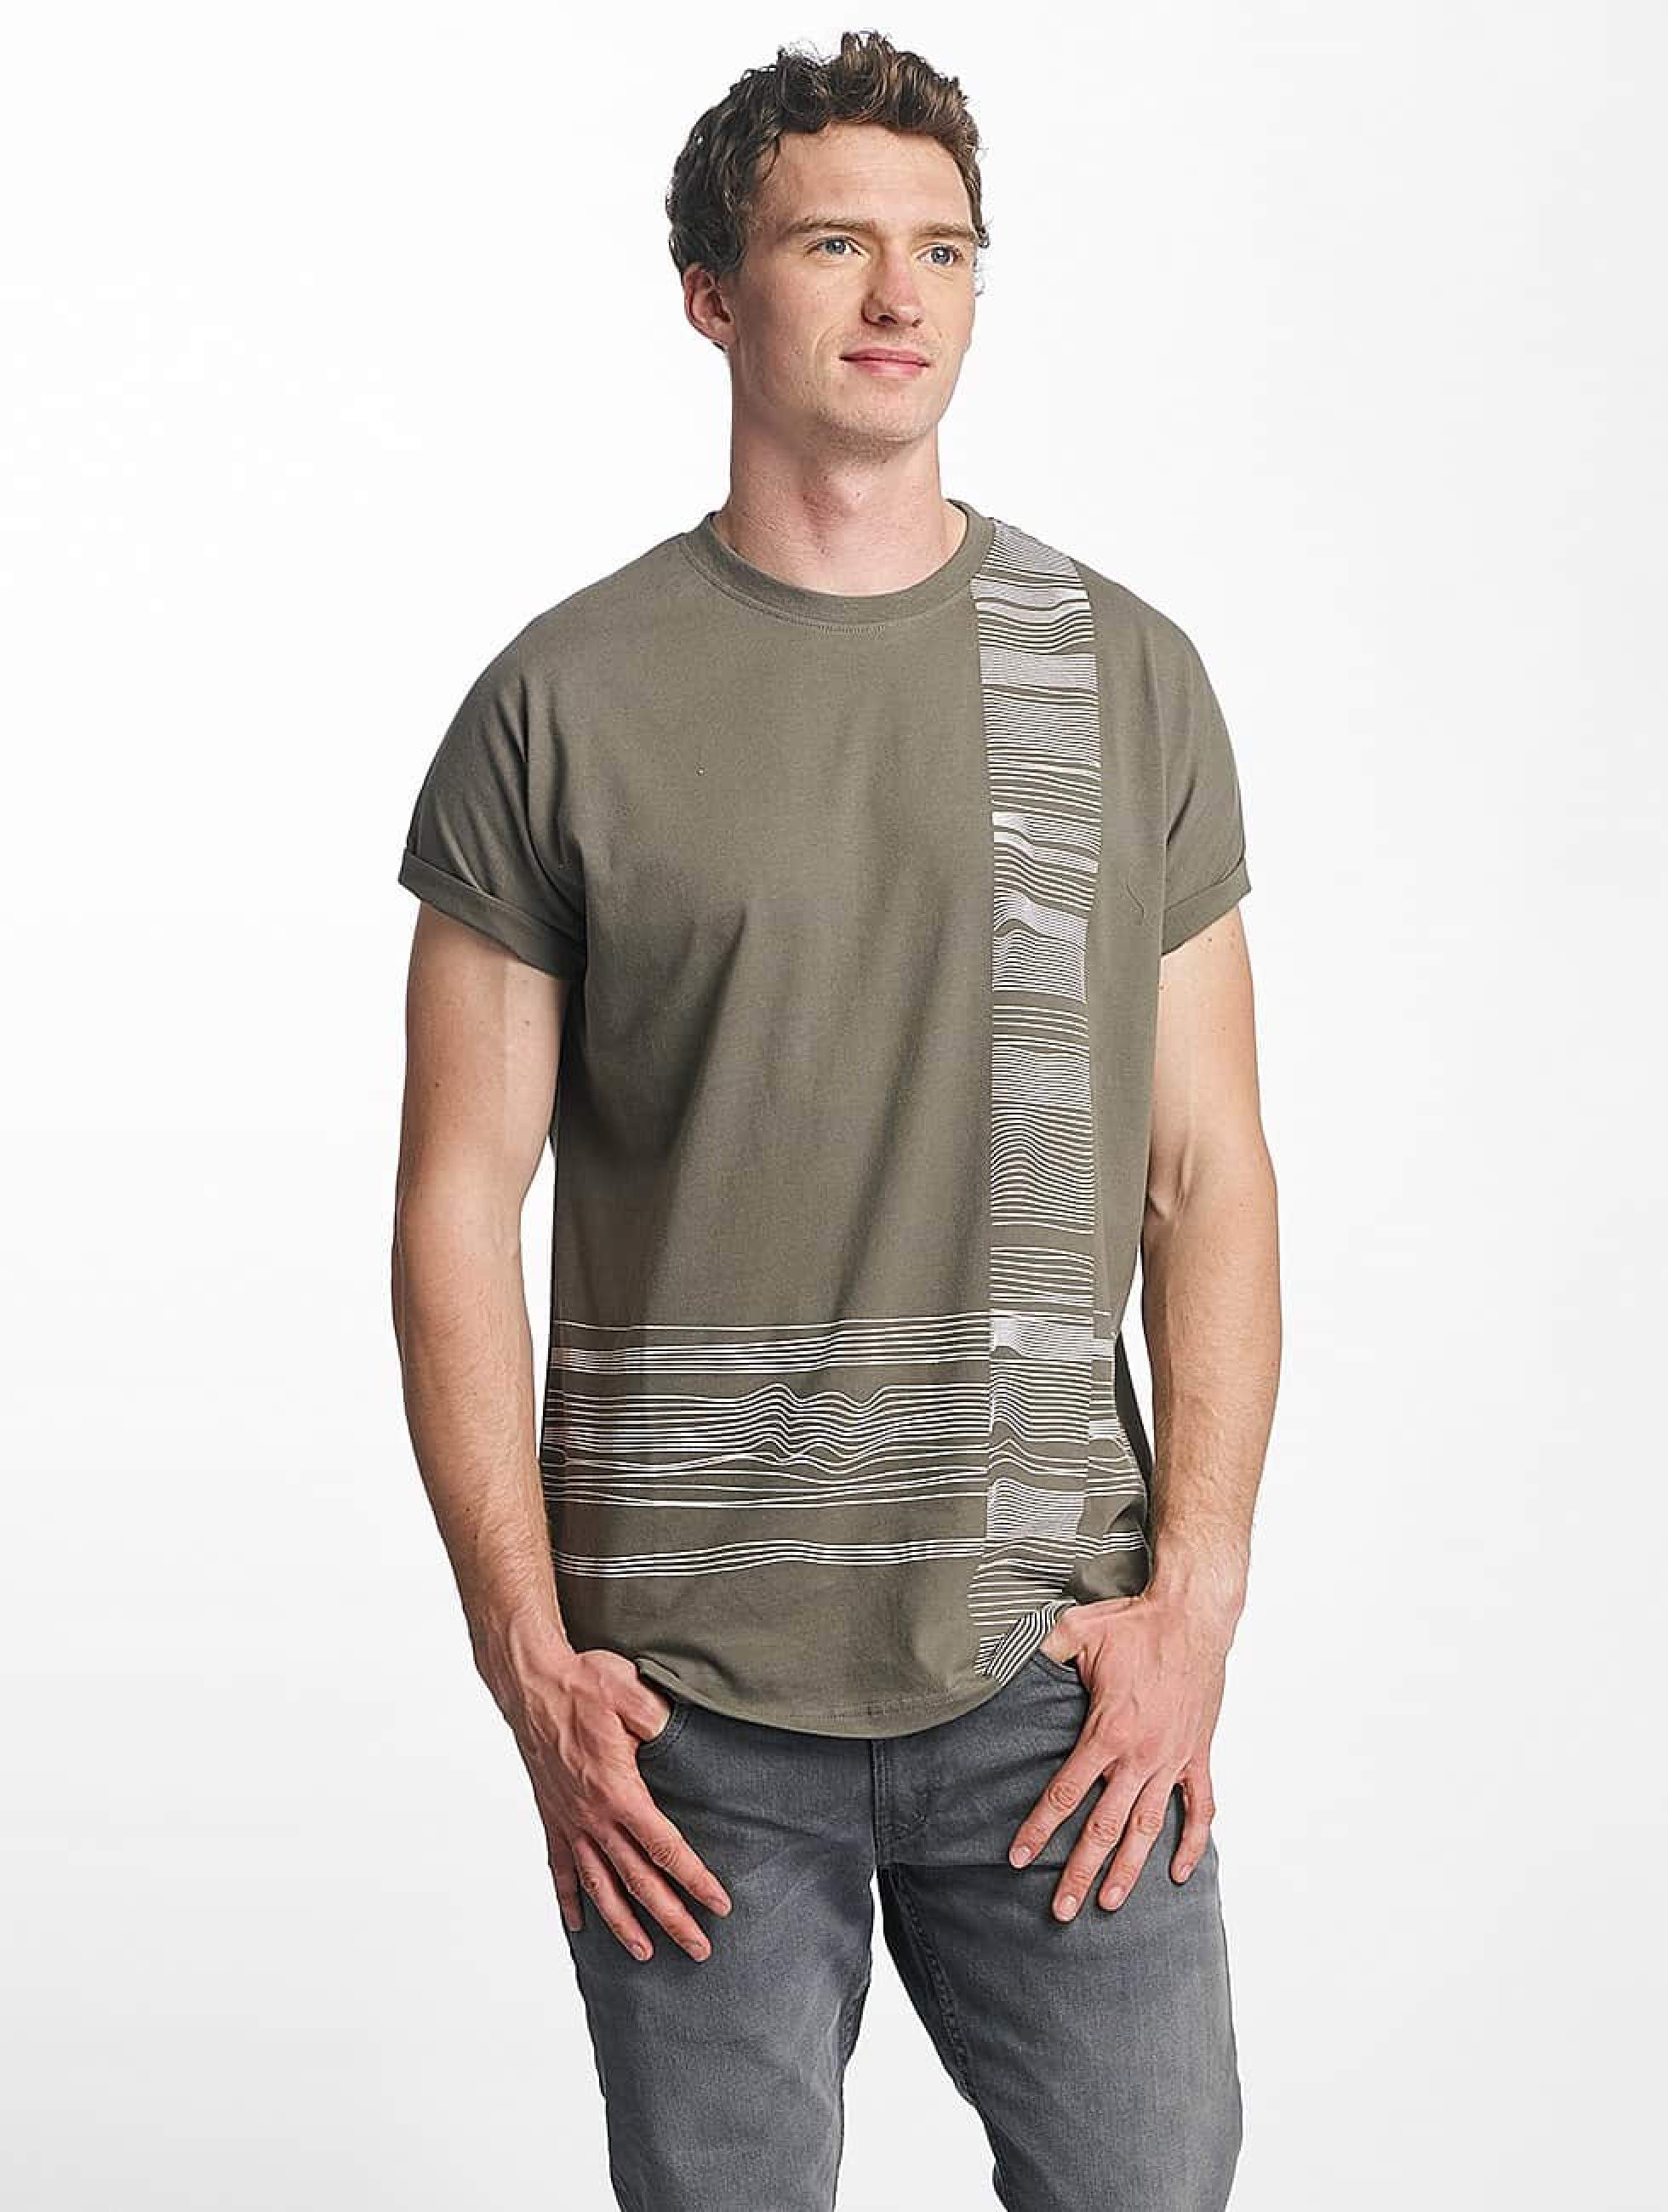 Just Rhyse / T-Shirt Morro Bay in olive S